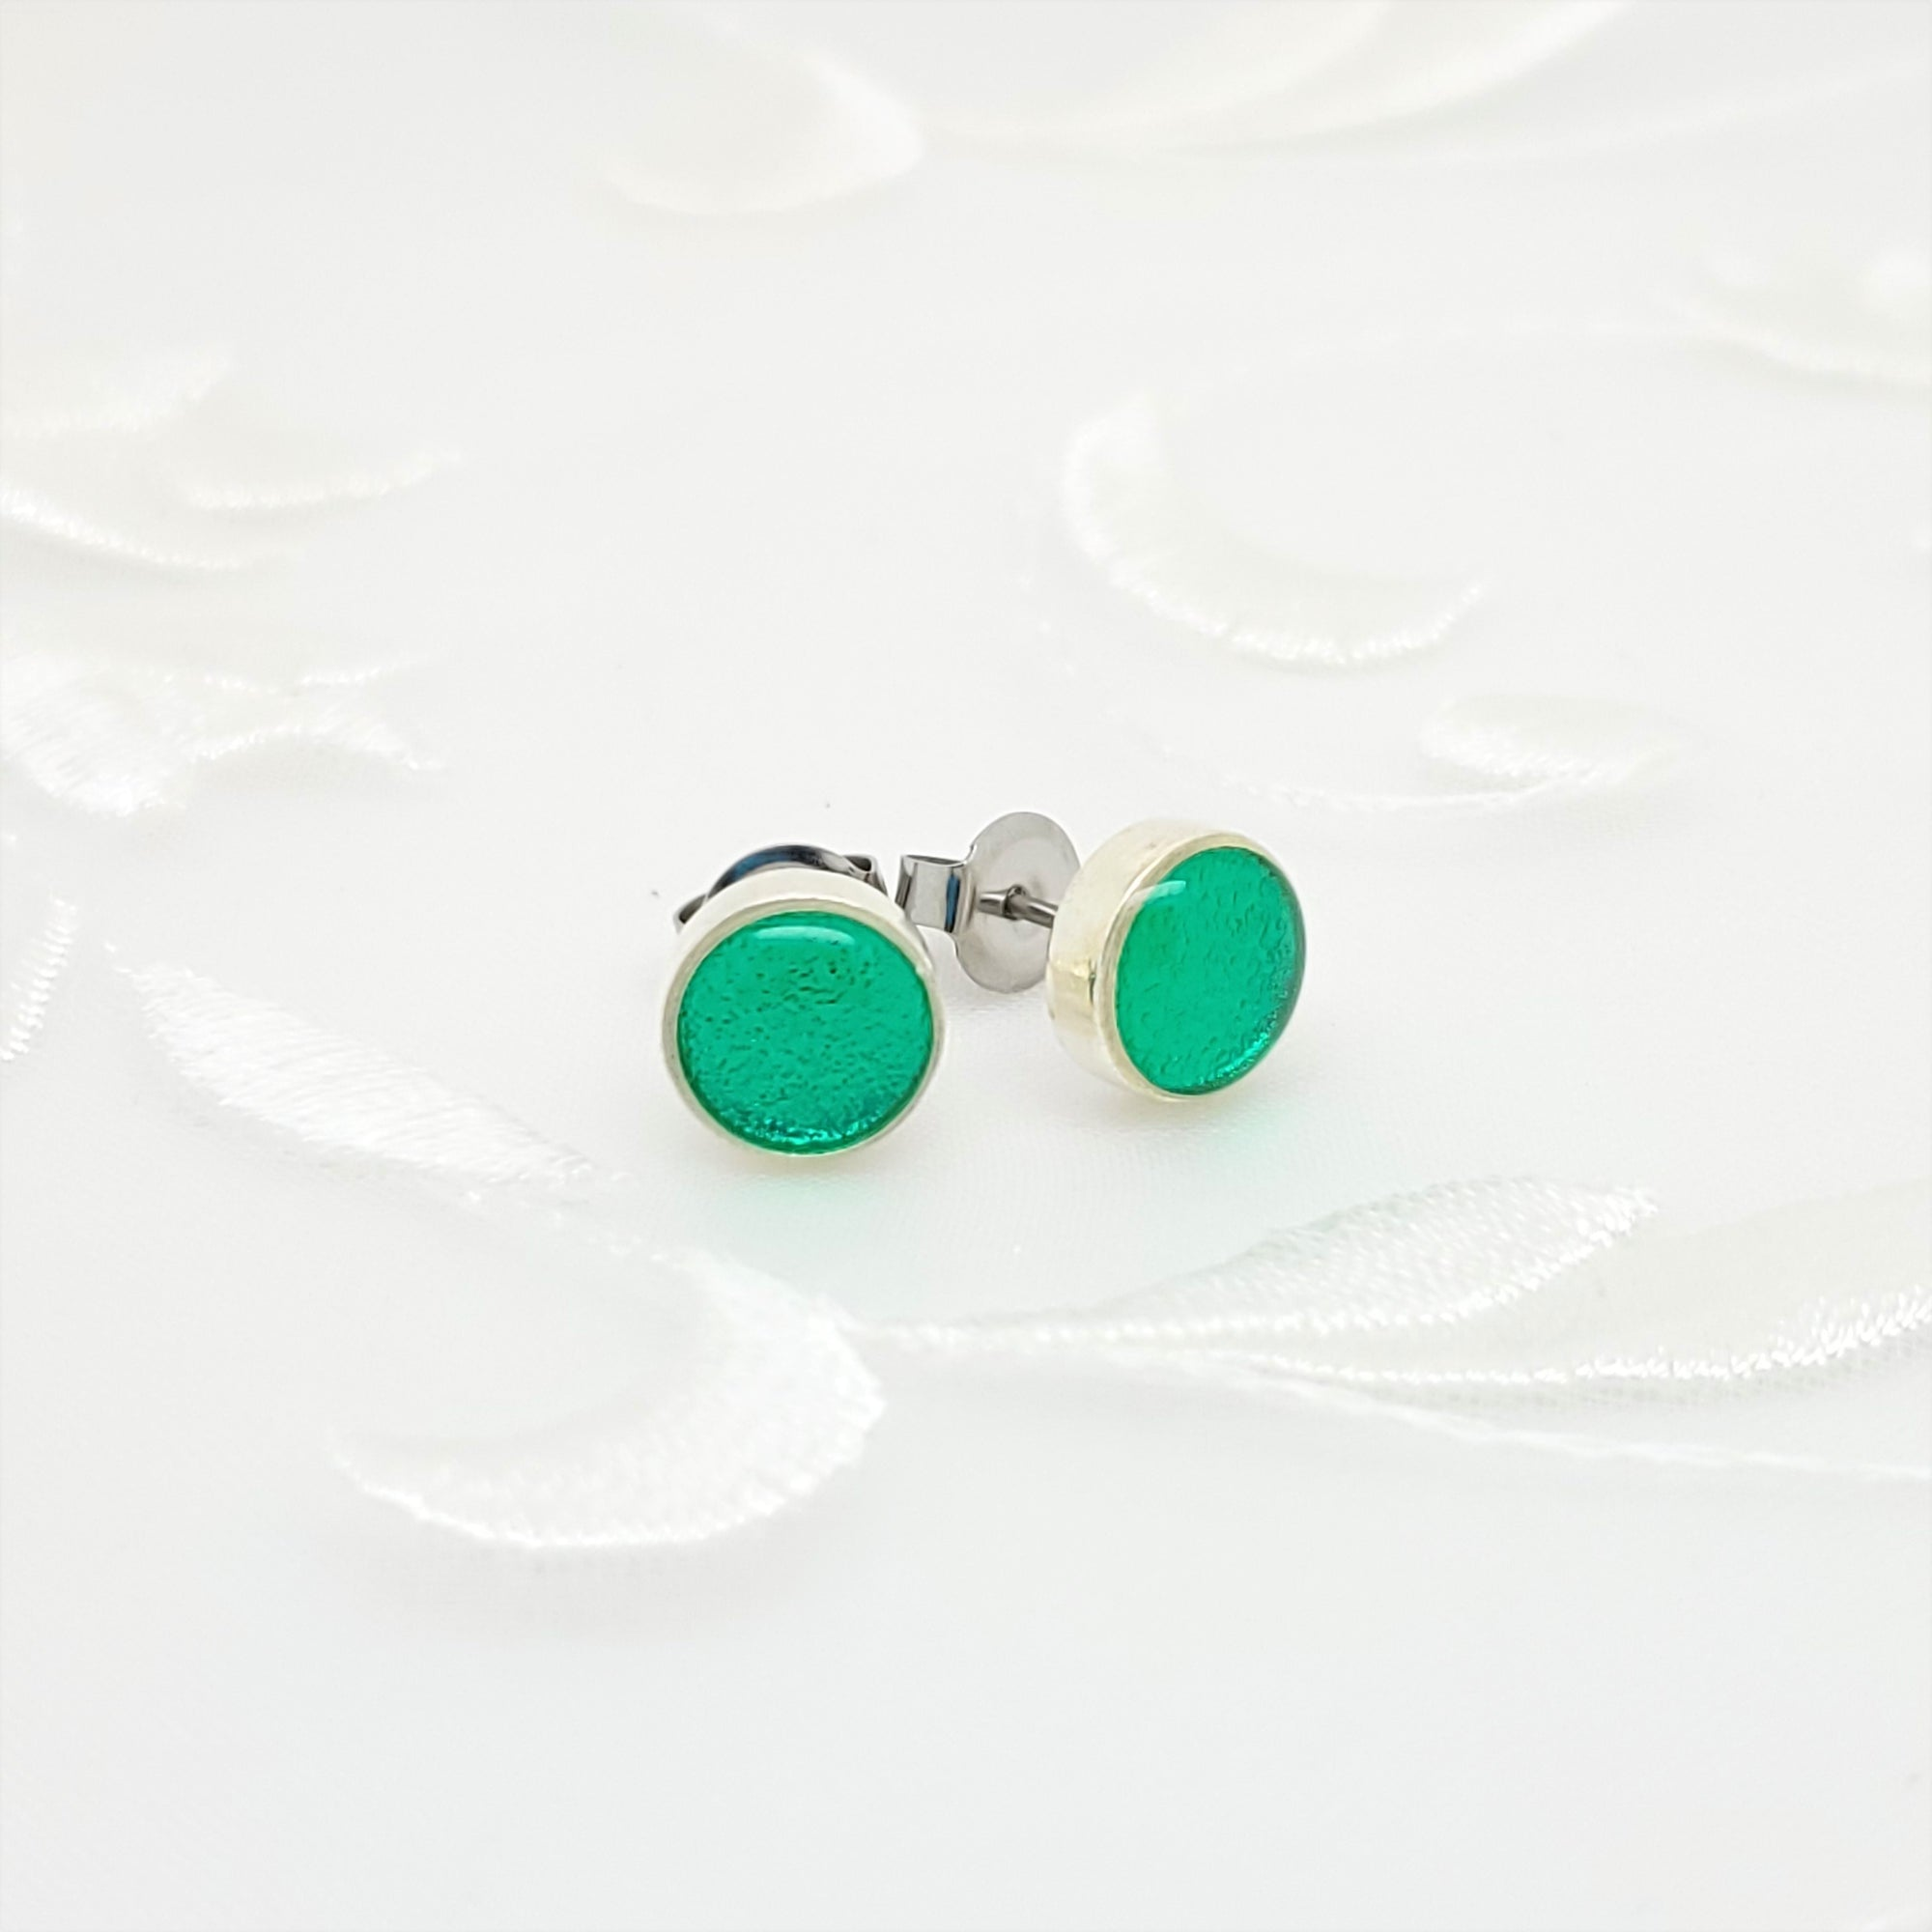 Antique Silver Round Stud Earrings with Transparent Green Resin